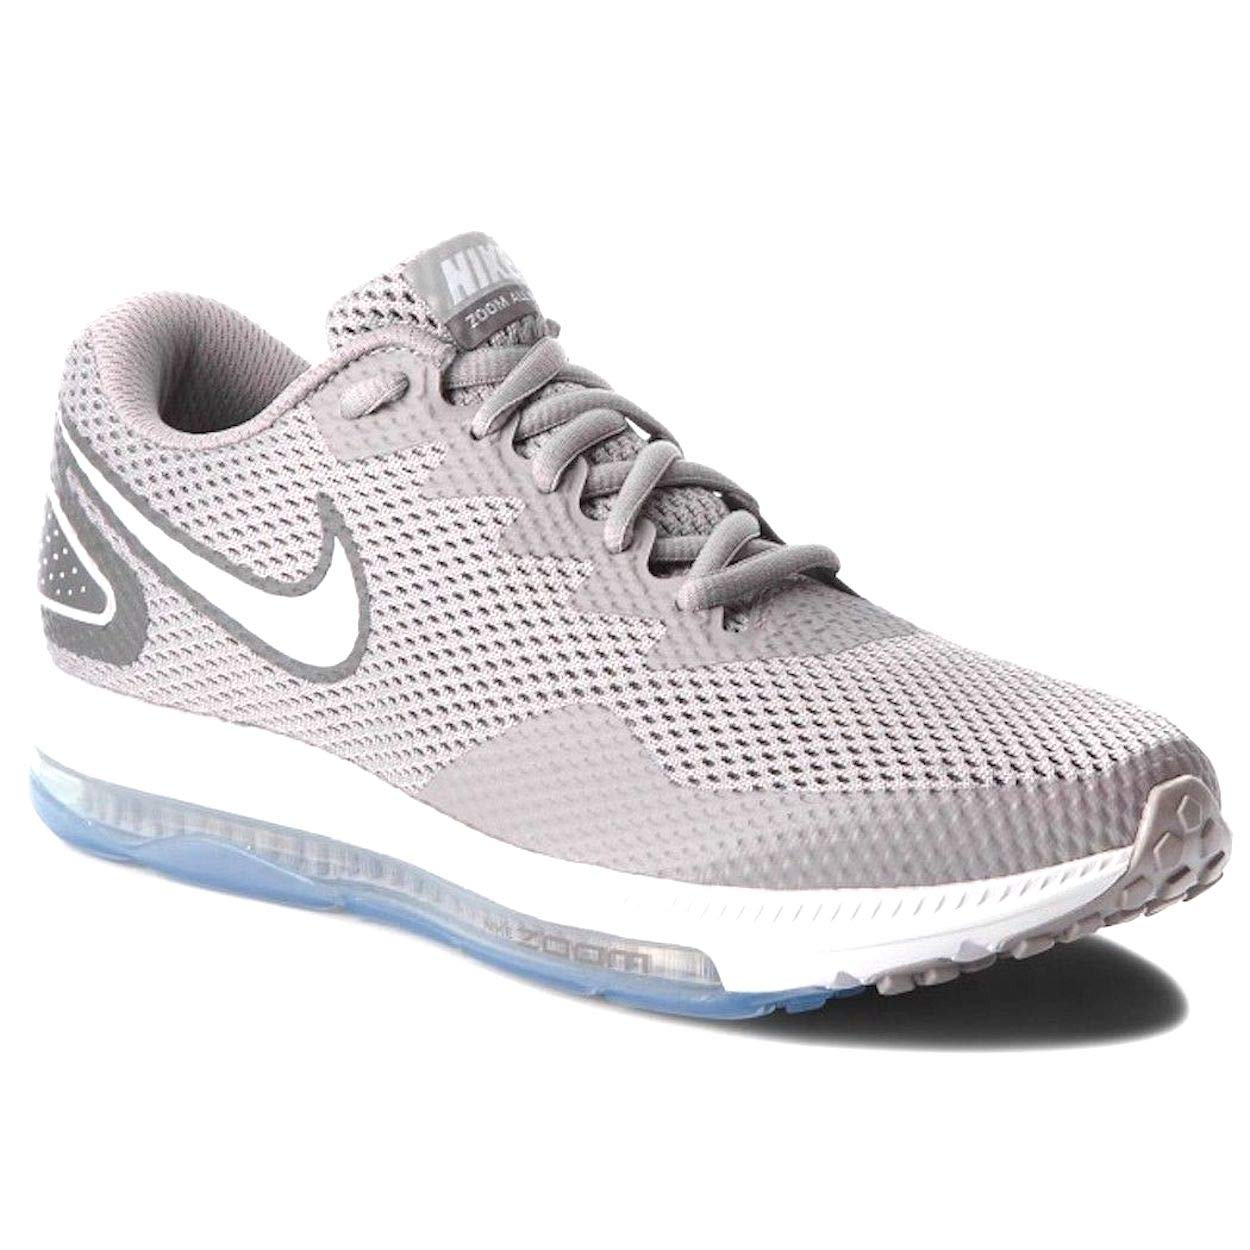 b7f3c43c Nike Zoom All out Low 2, Zapatillas para Hombre: Amazon.es: Zapatos y  complementos